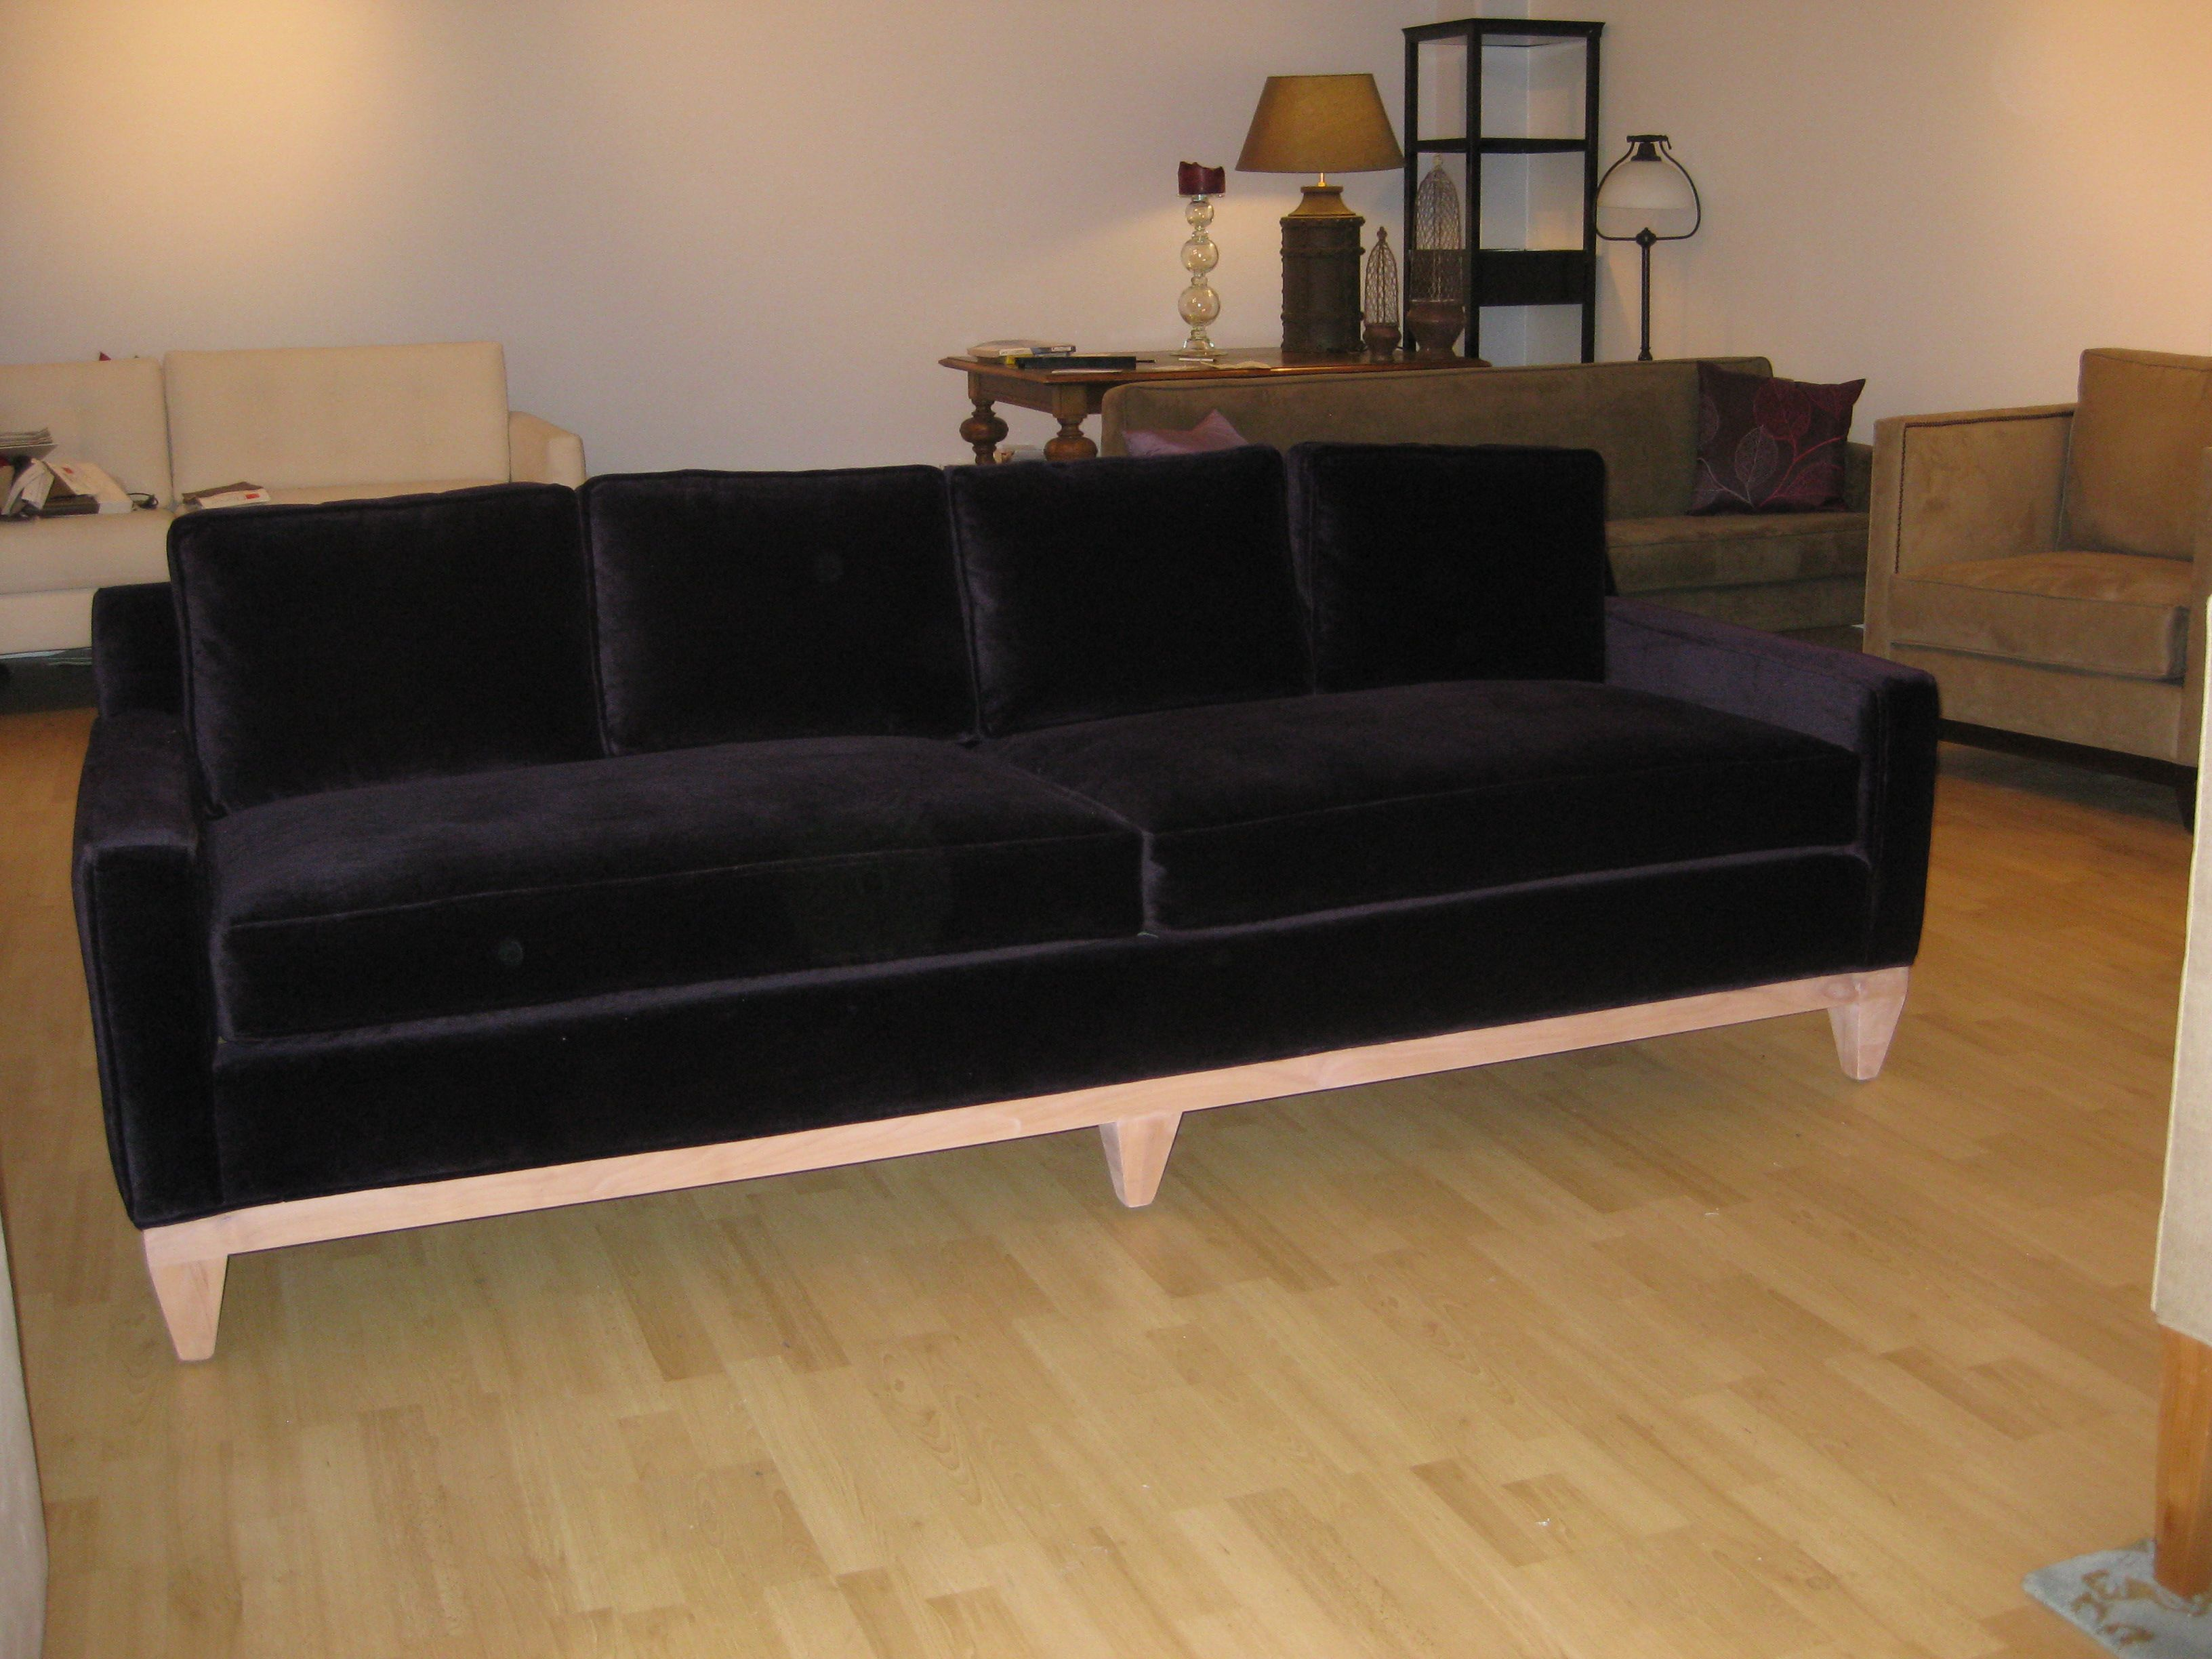 Black velvet couch House Pinterest